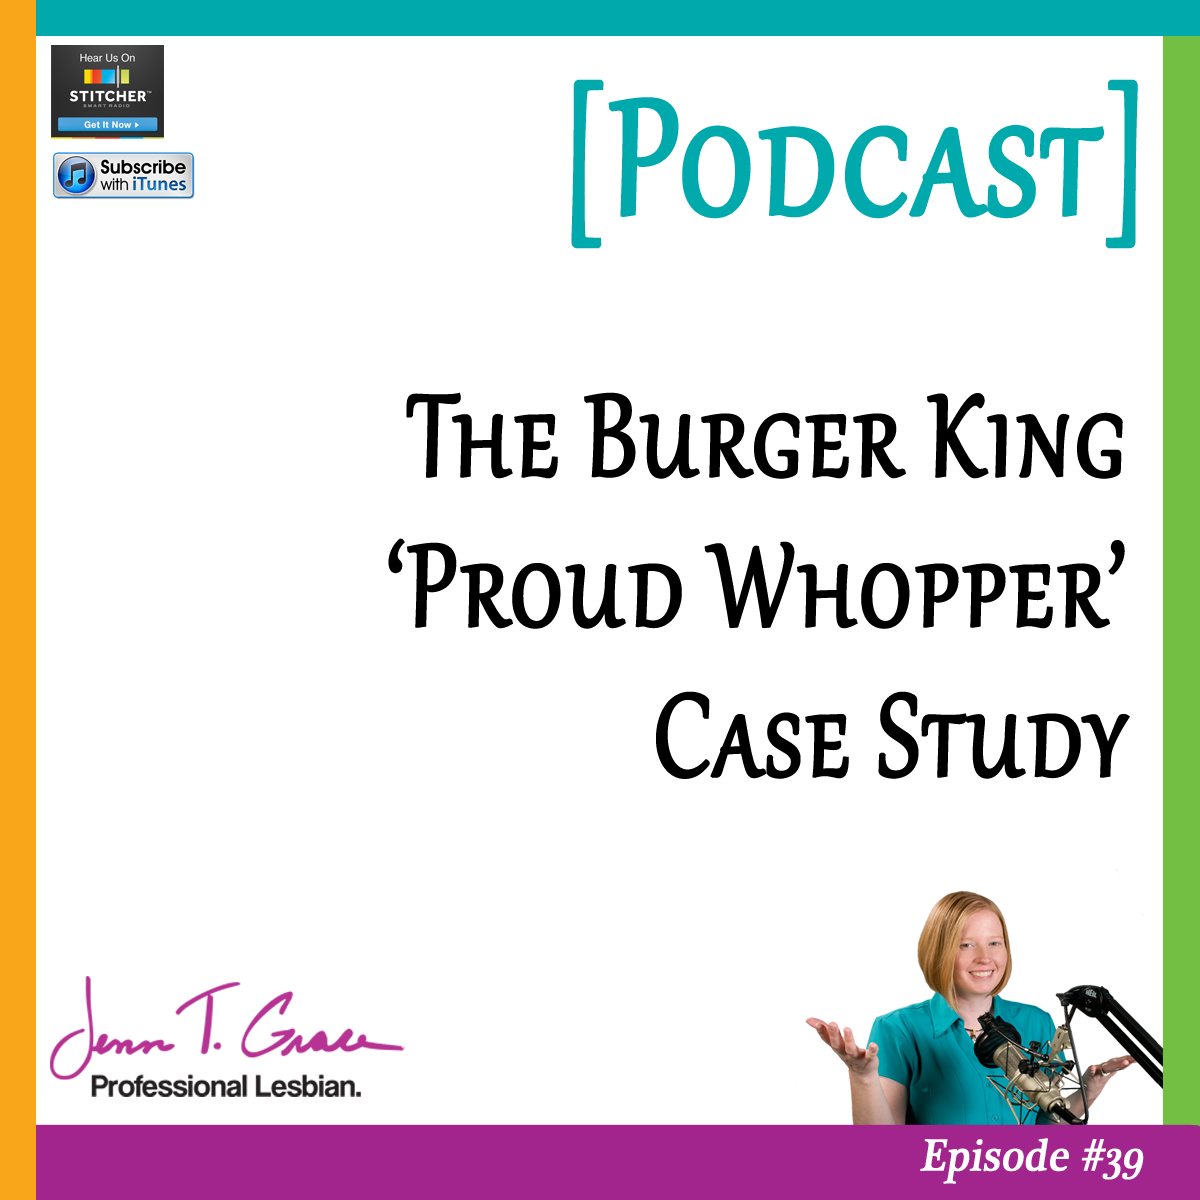 about burger king essay Before there was the lakers vs celtics, mcdonalds vs burger king, or coke vs pepsi, there was the debate of on campus living vs off campus living ever since there have been colleges, students have had to decide whether to dorm or not to dorm.